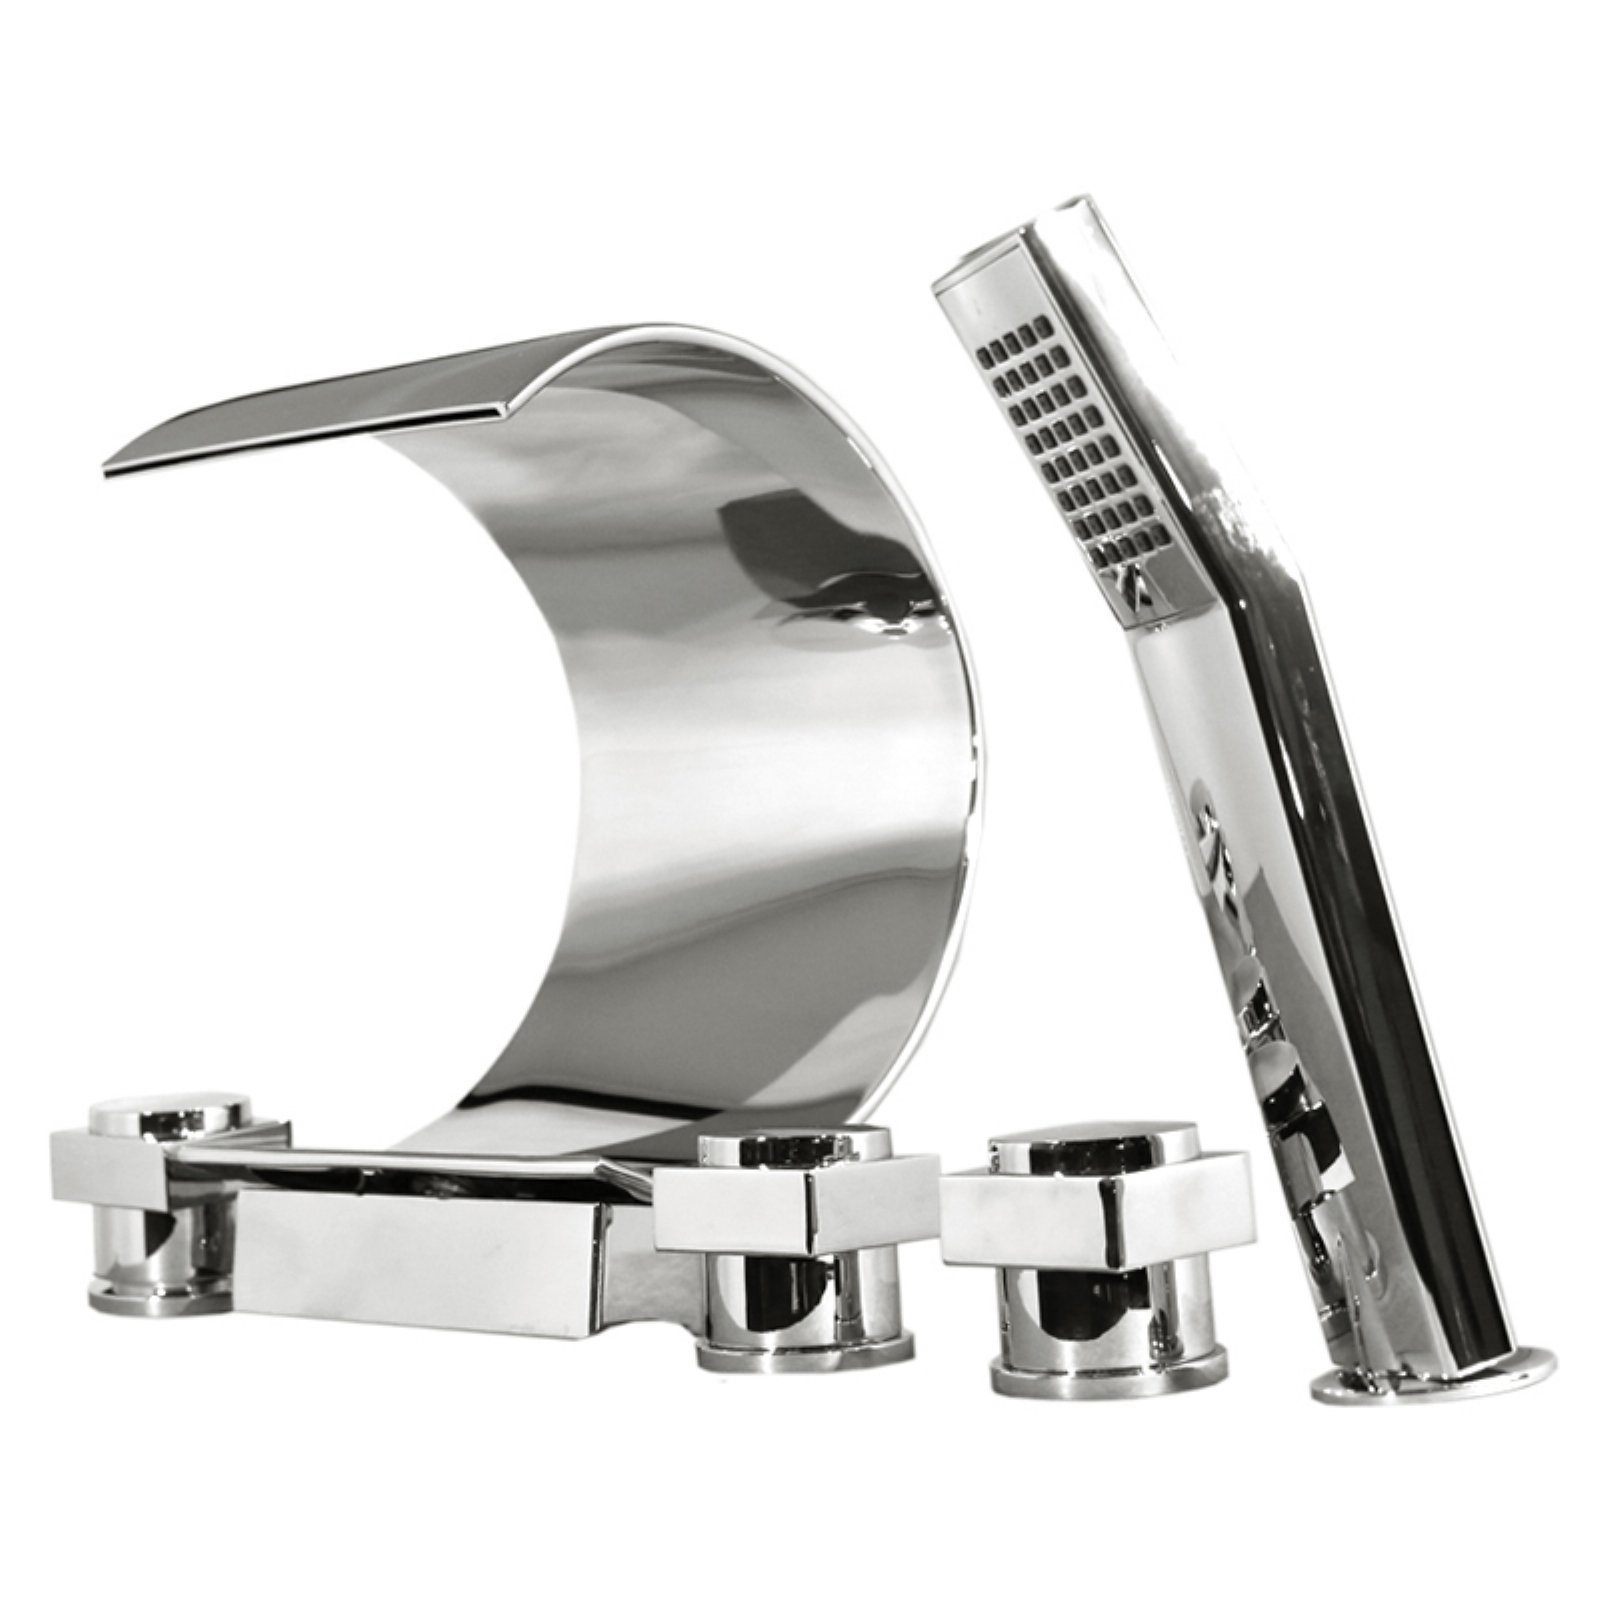 Kokols MPF01 Deck Mount Bathtub Faucet with Hand Shower